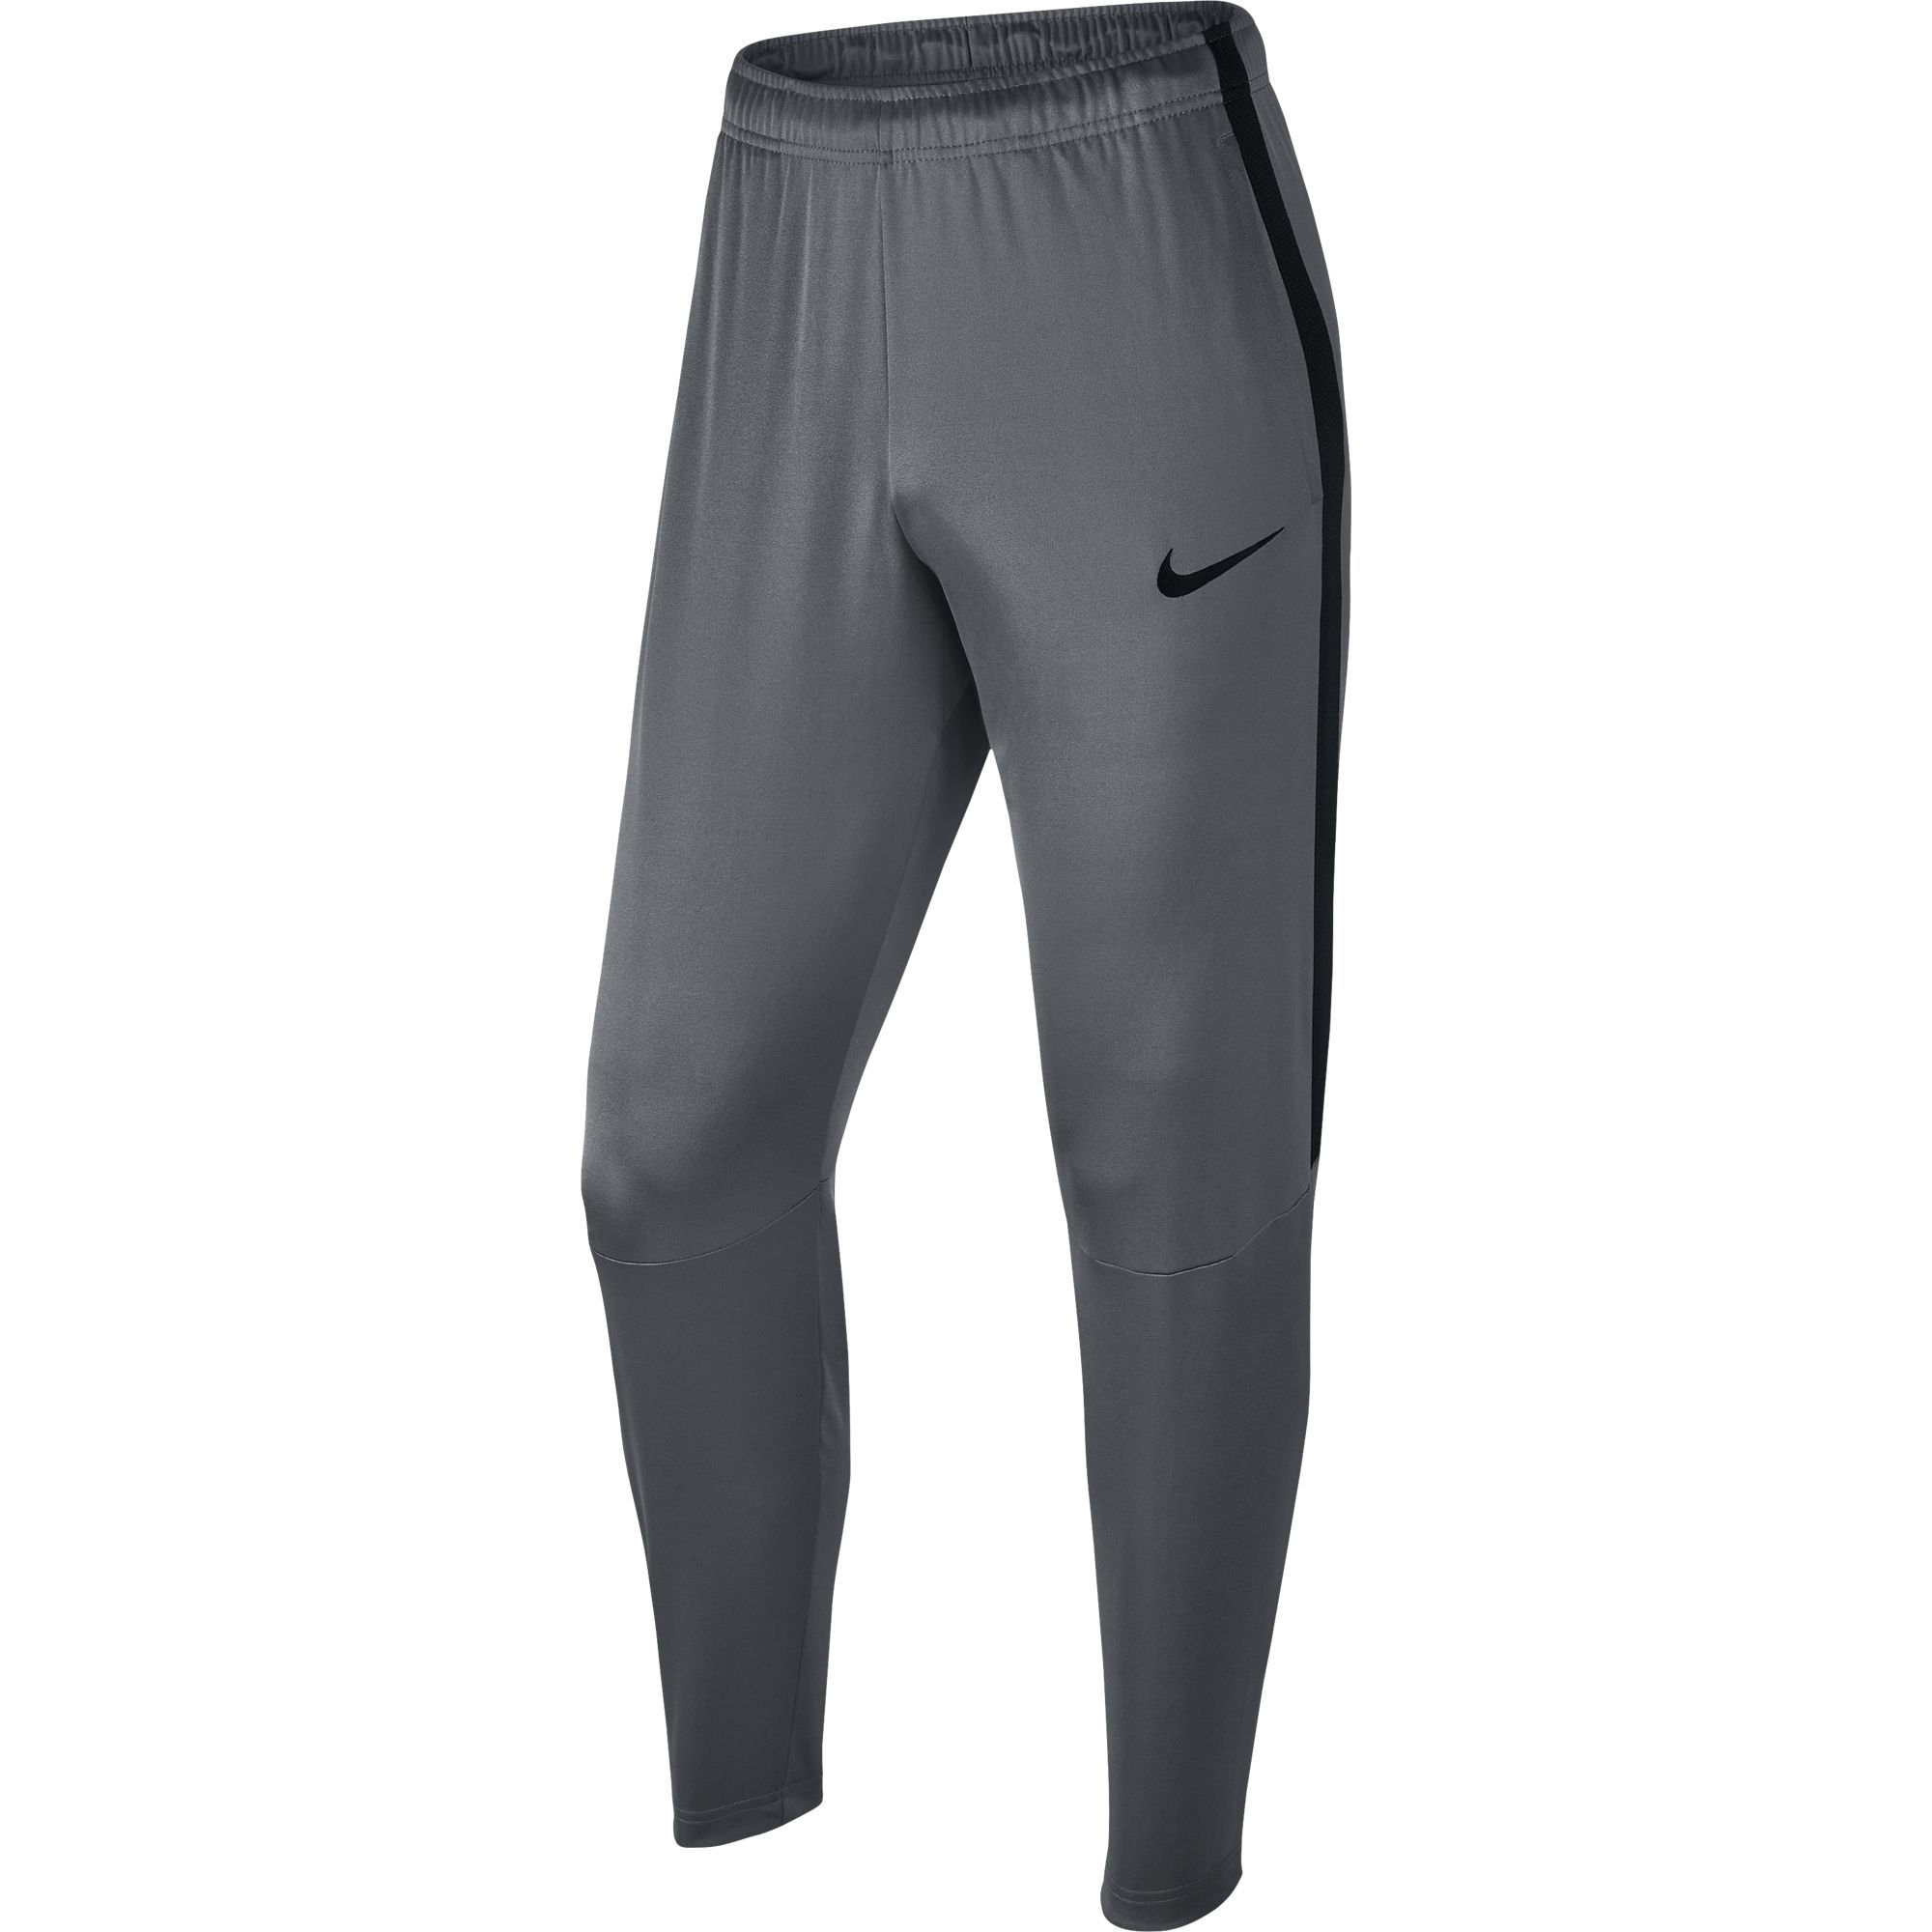 NIKE Men's Epic Knit Pants, Cool Grey/Black/Black/Black, Small by Nike (Image #1)